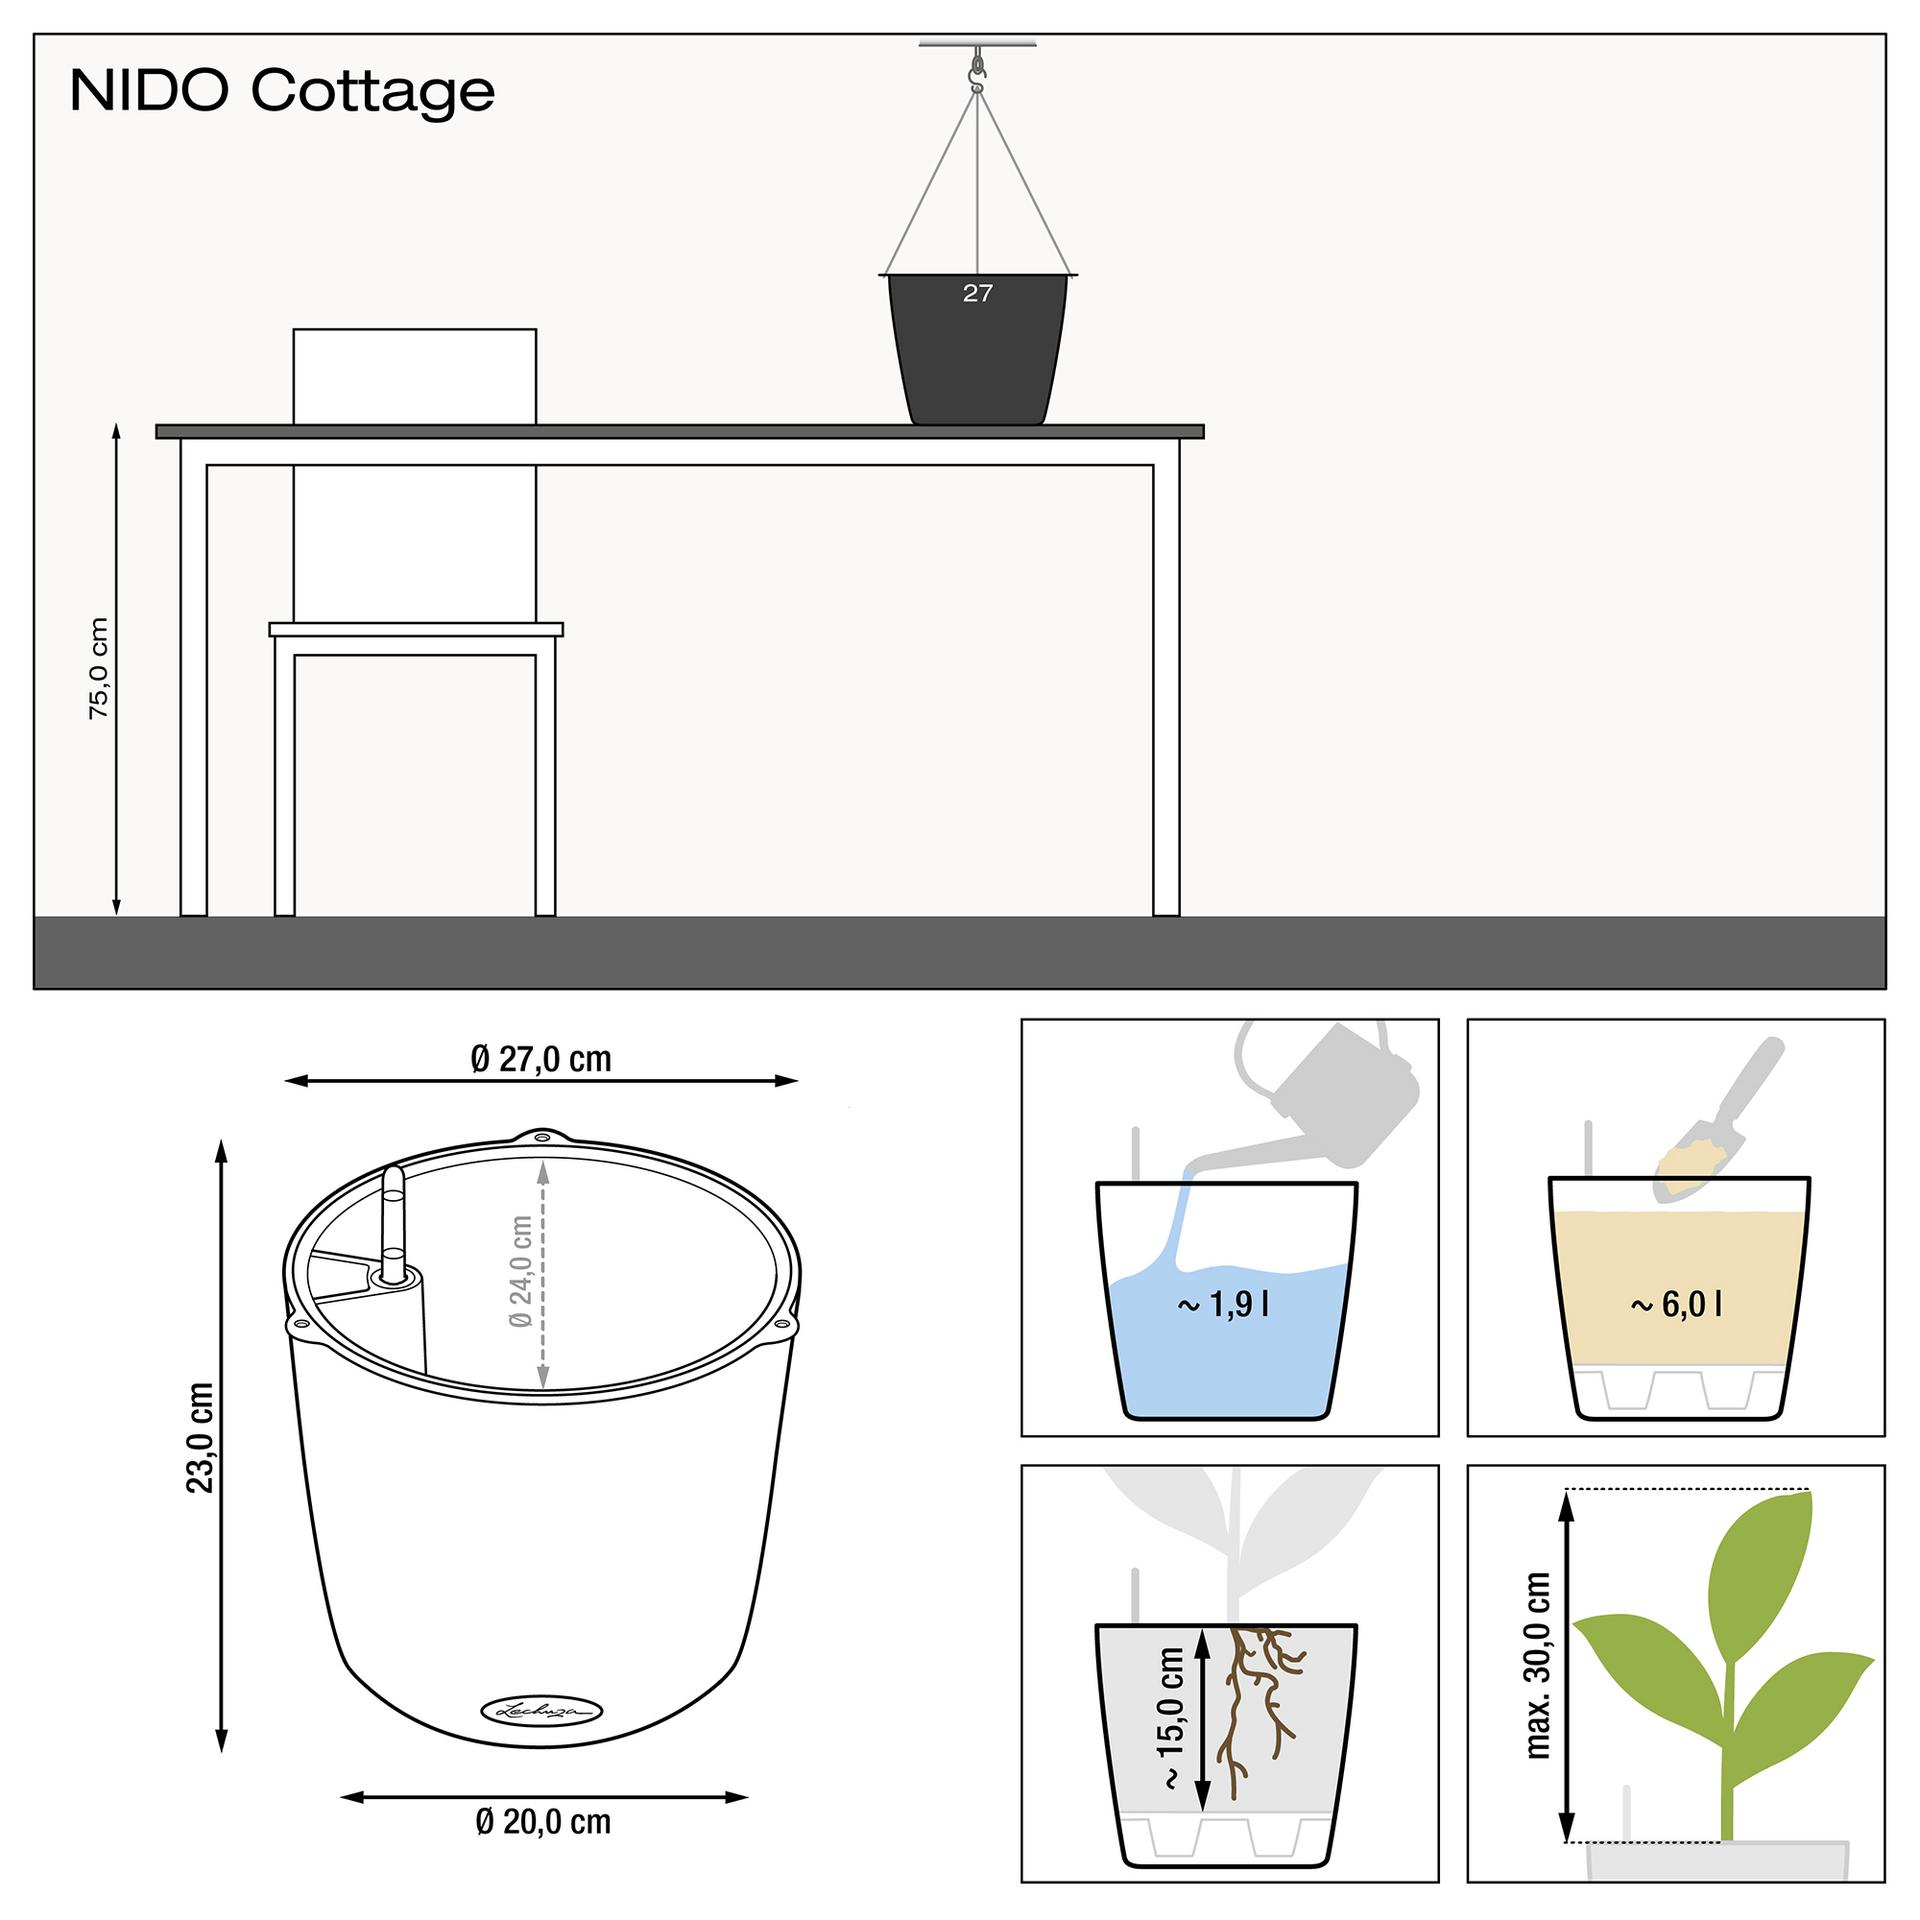 le_nido-cottage_product_addi_nz